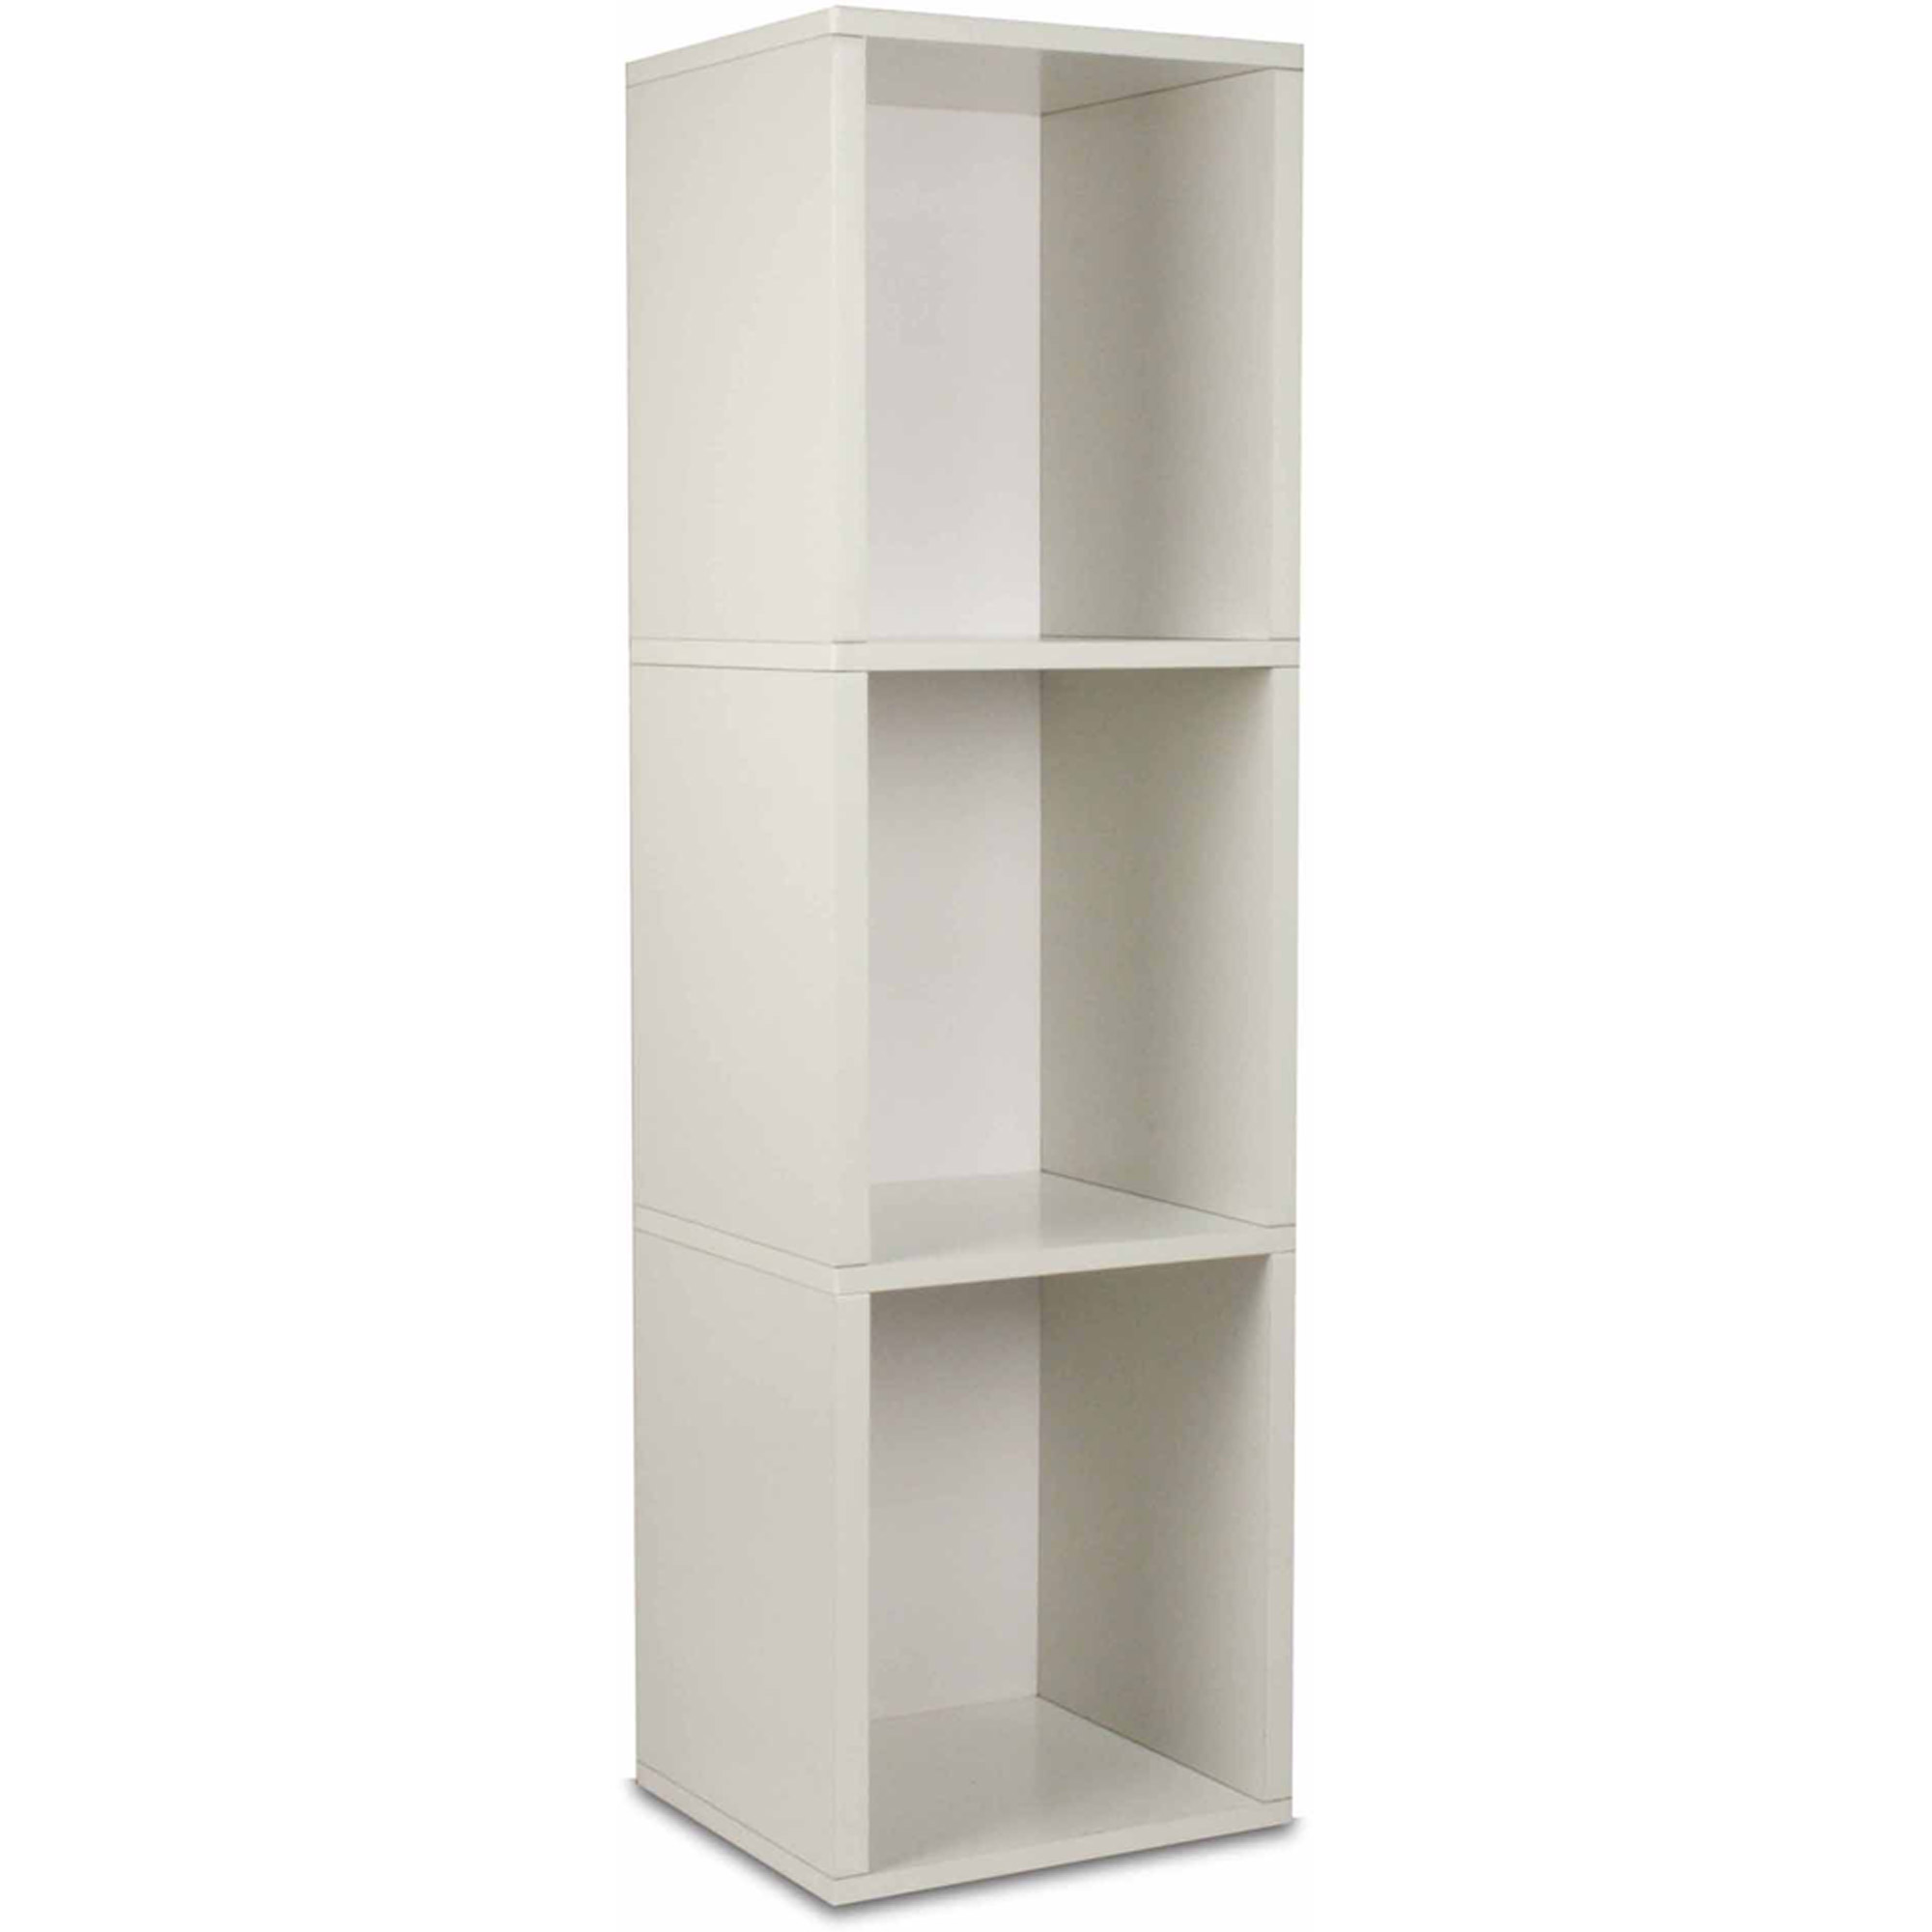 Way Basics Eco 3 Shelf Triple Cube Plus Narrow Bookcase And Storage Shelf White Walmart Com